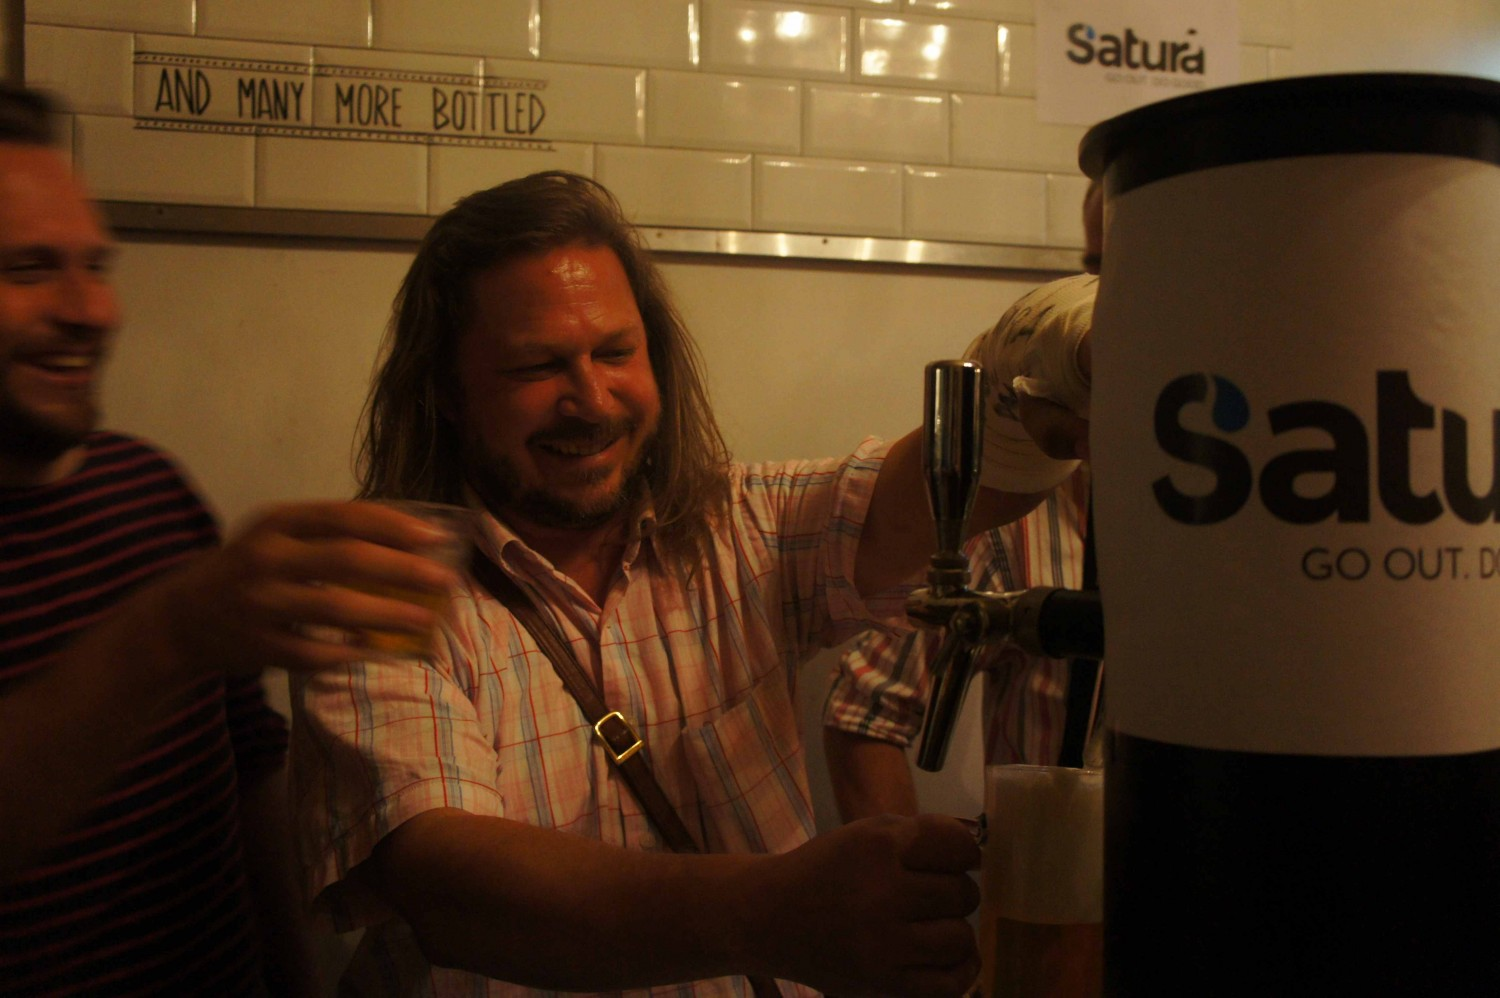 Trent zum Mallen saves some beer behind the Satura bar